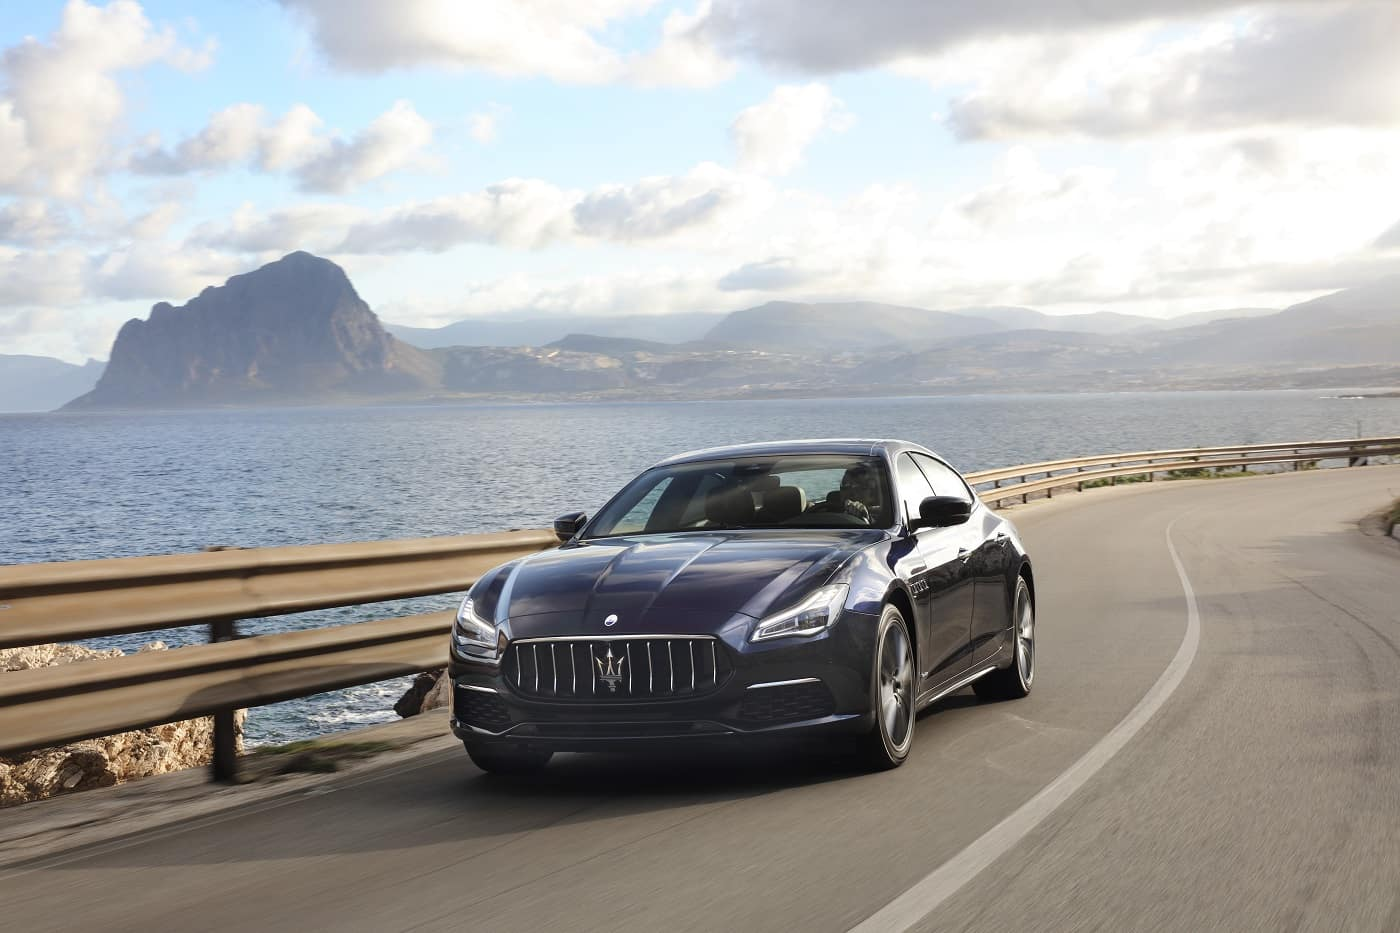 Luxury Maserati Cars for Sale